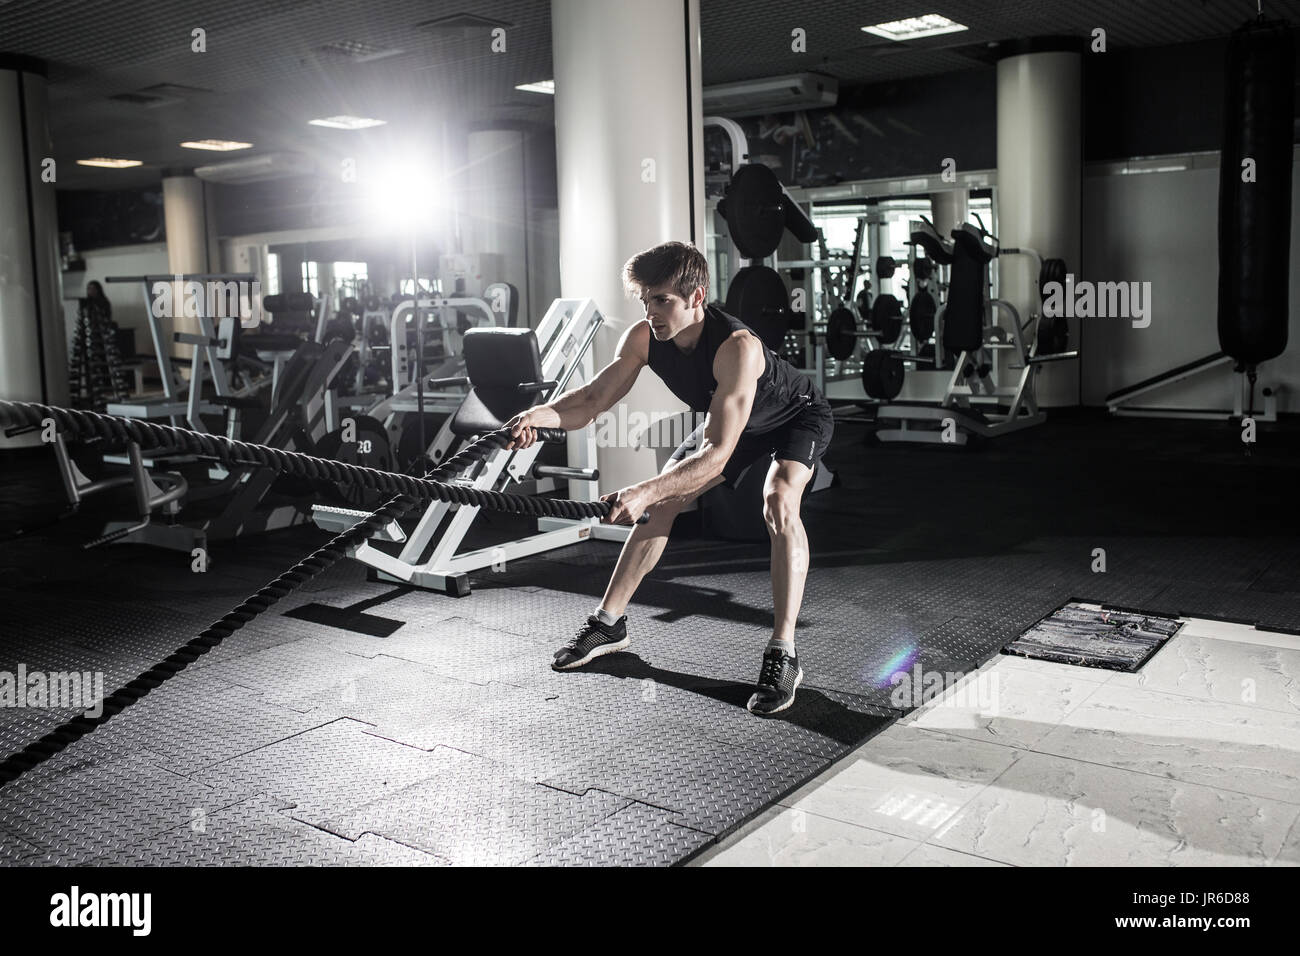 Battle ropes exercise in the gym. Crossfit - Stock Image